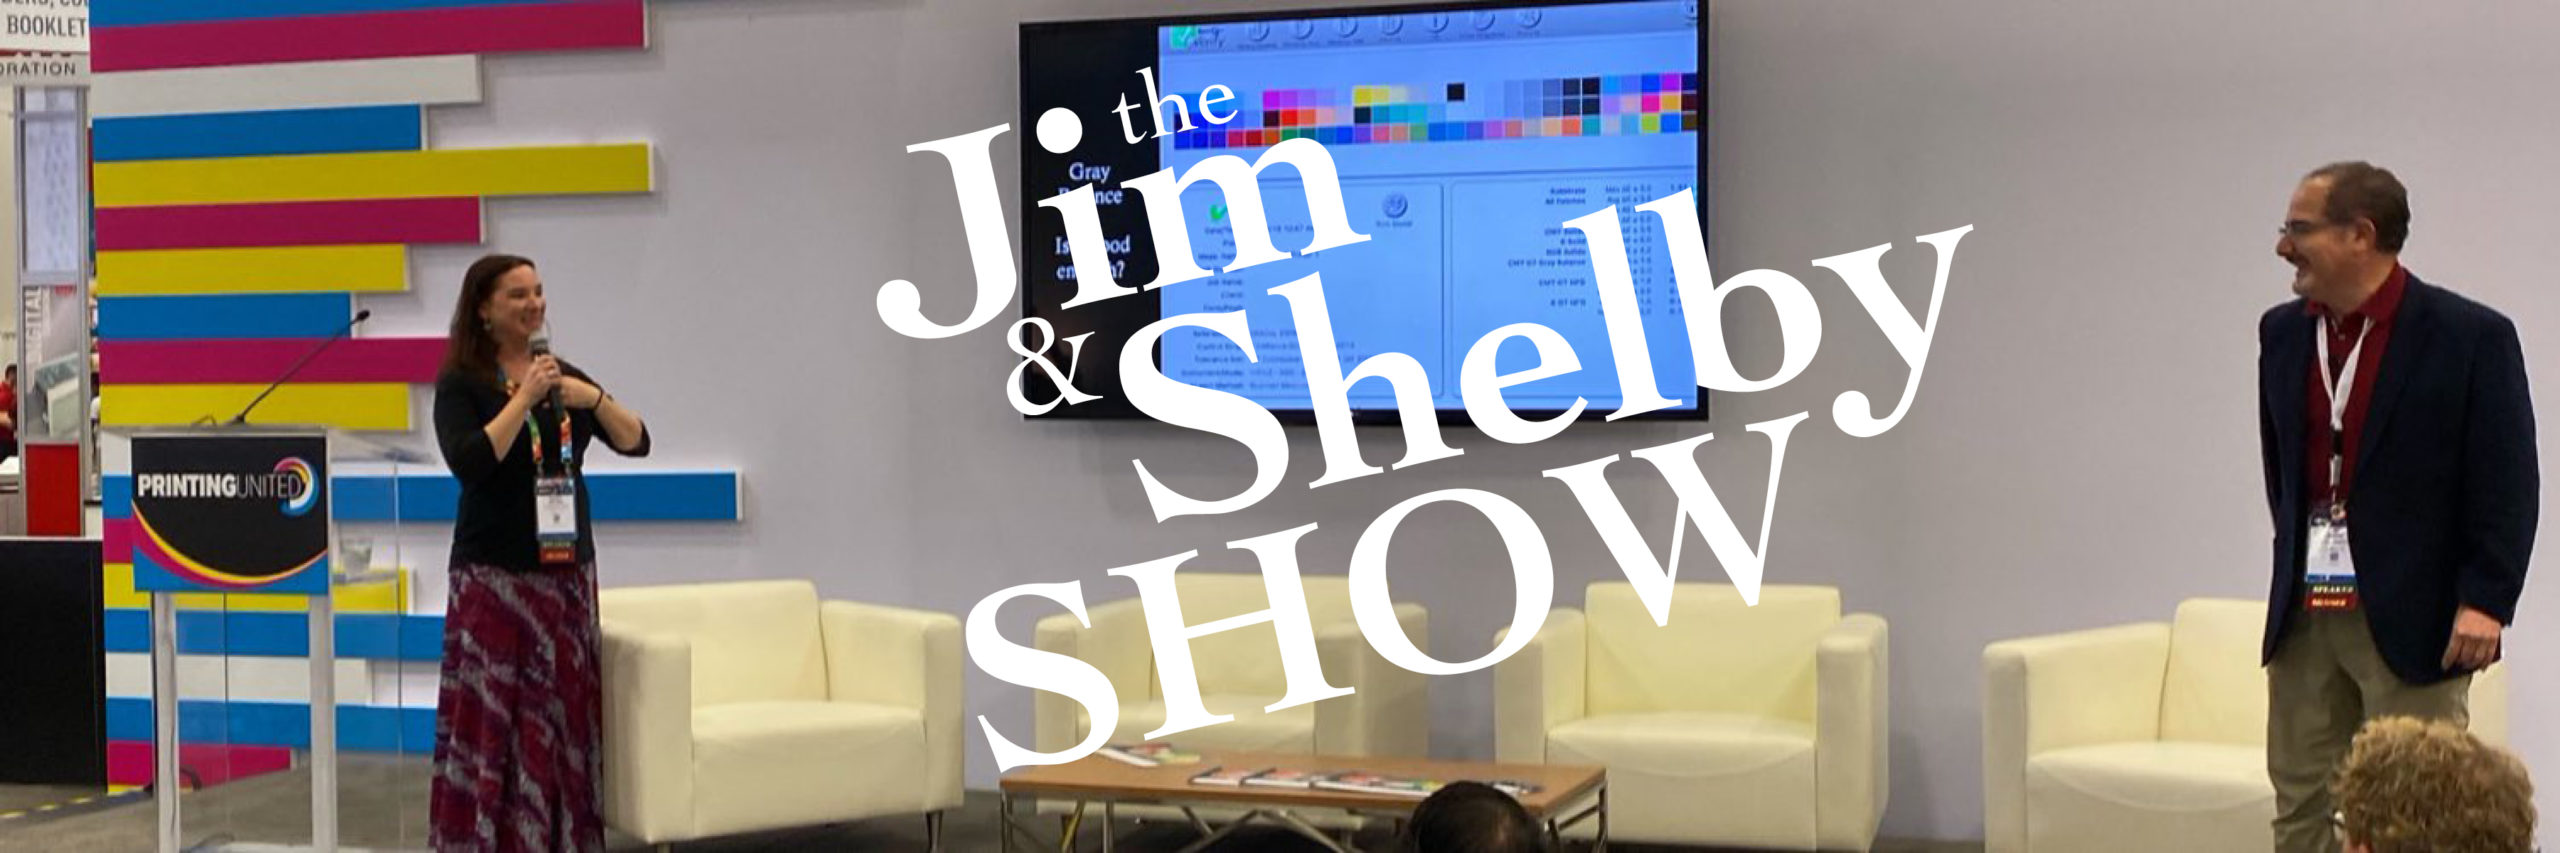 Image of Jim & Shelby Show Image